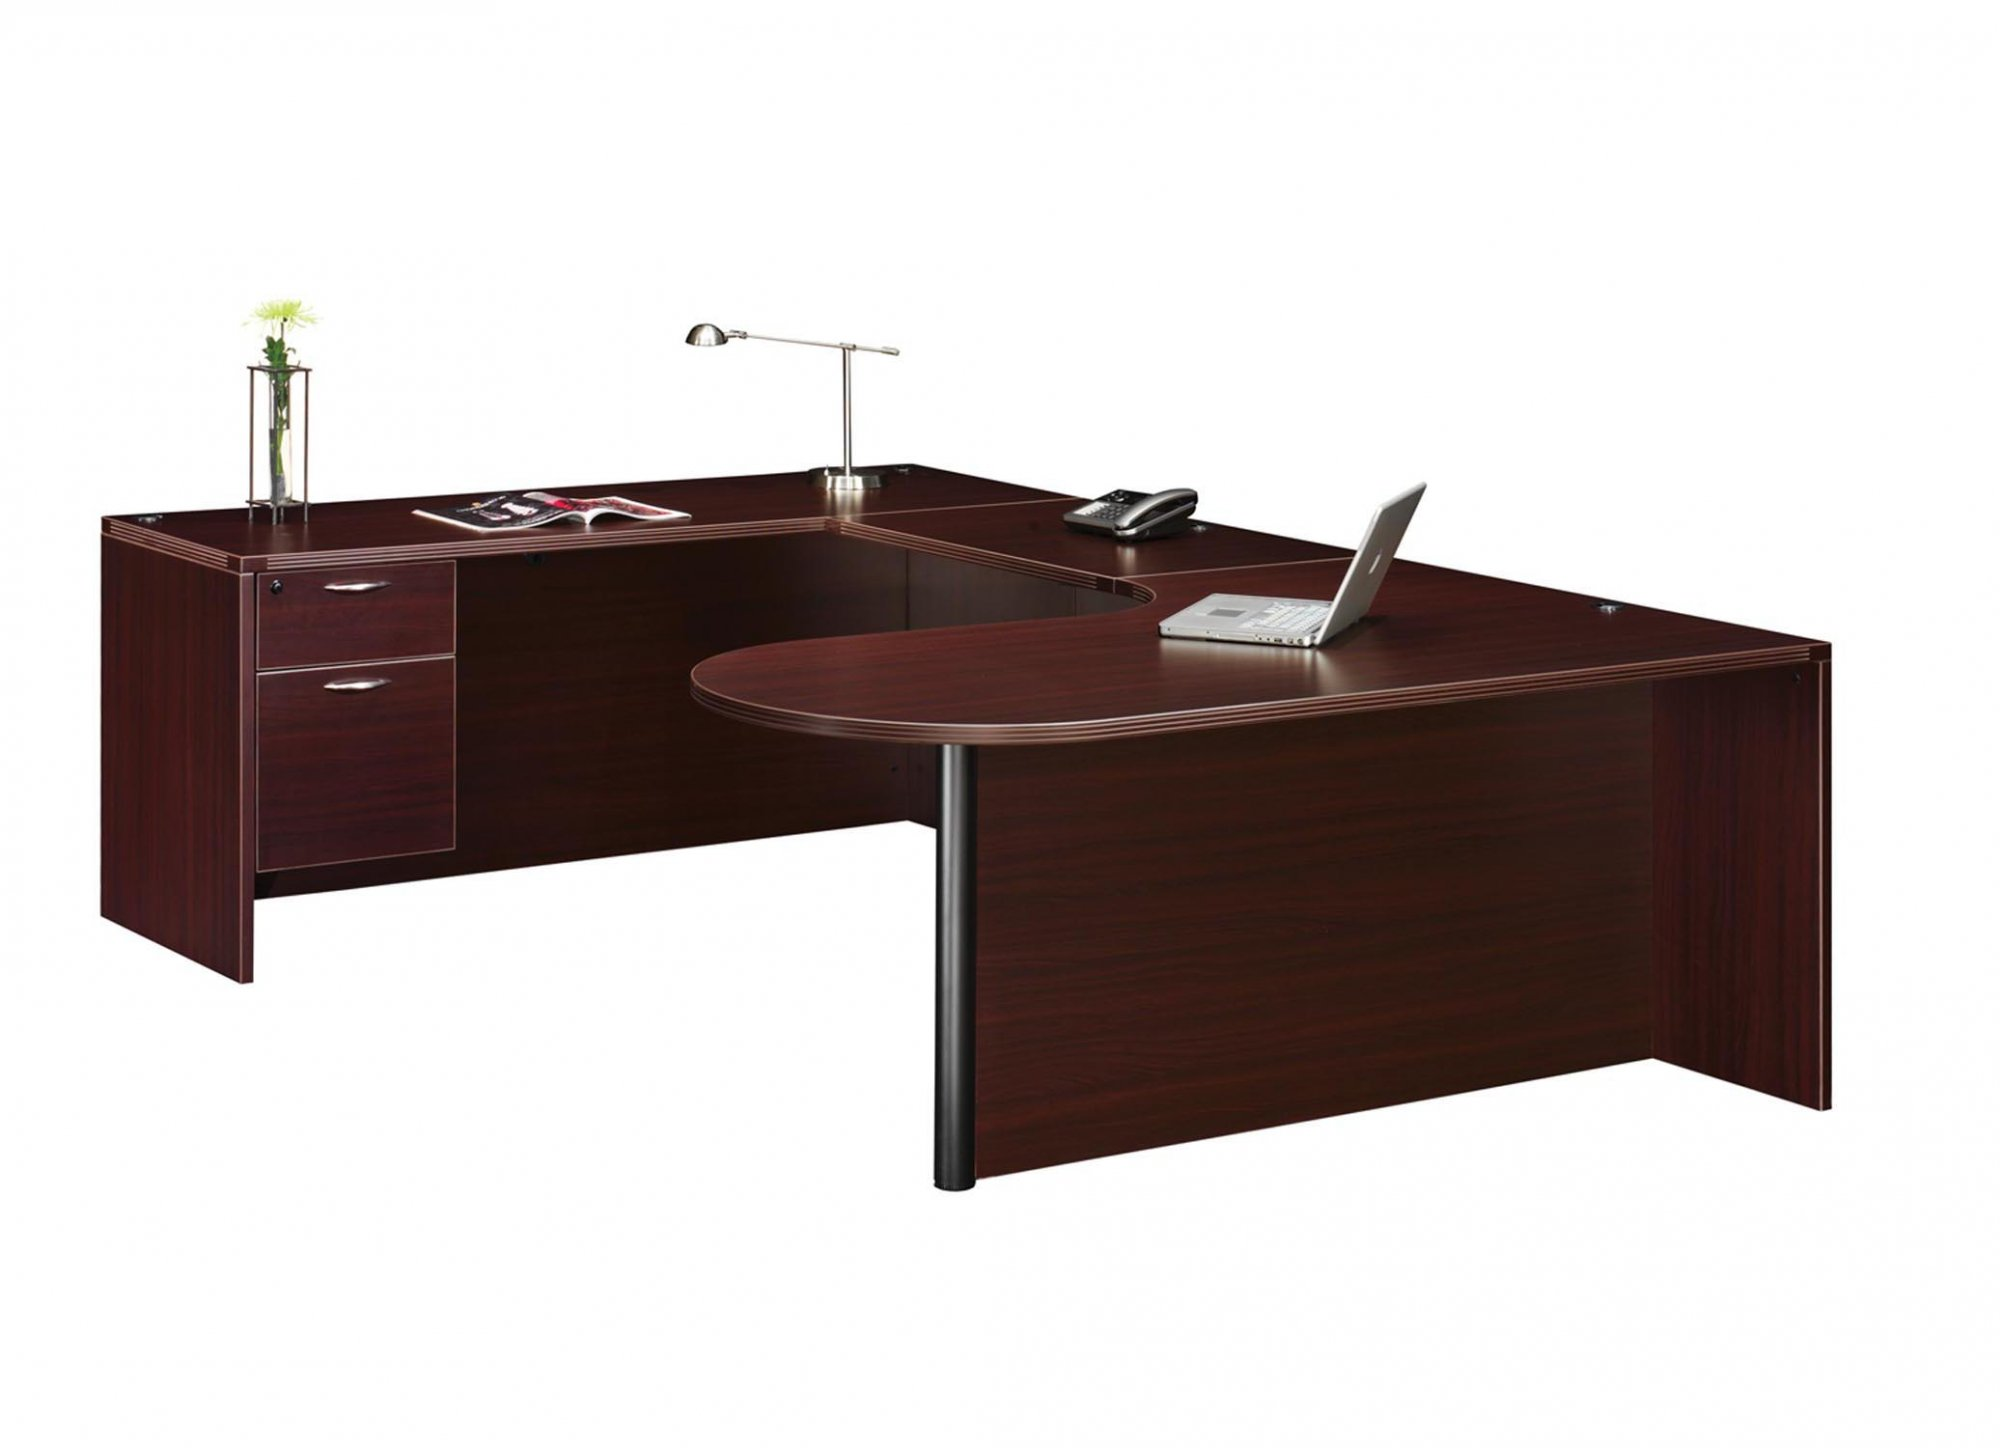 Flexsteel Fairplex  Left Executive Corner Peninsula U Desk with 3/4 Pedestals